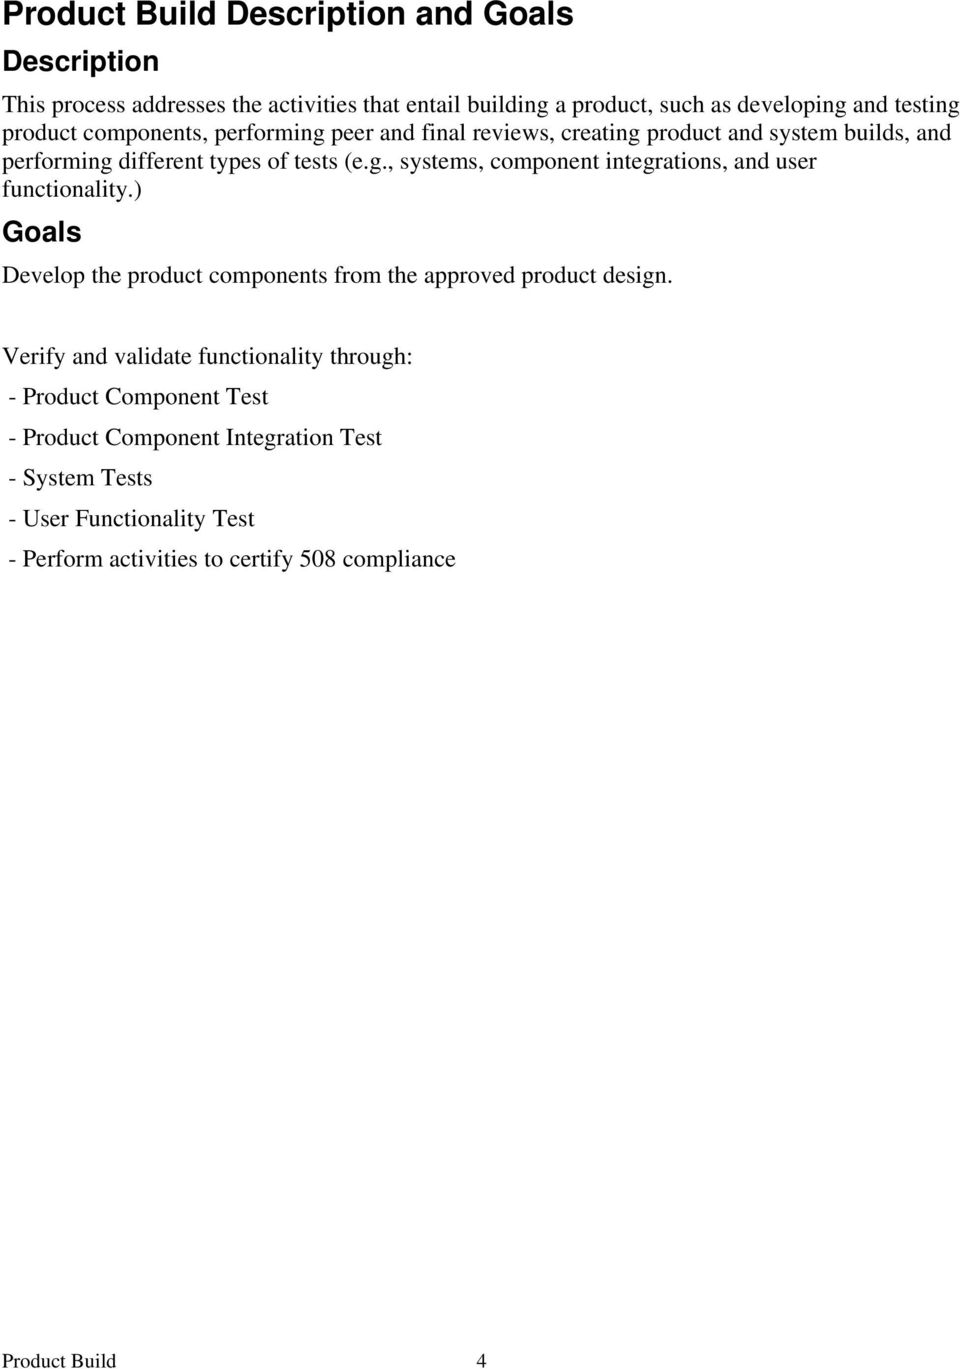 ) Goals Develop the product components from the approved product design.